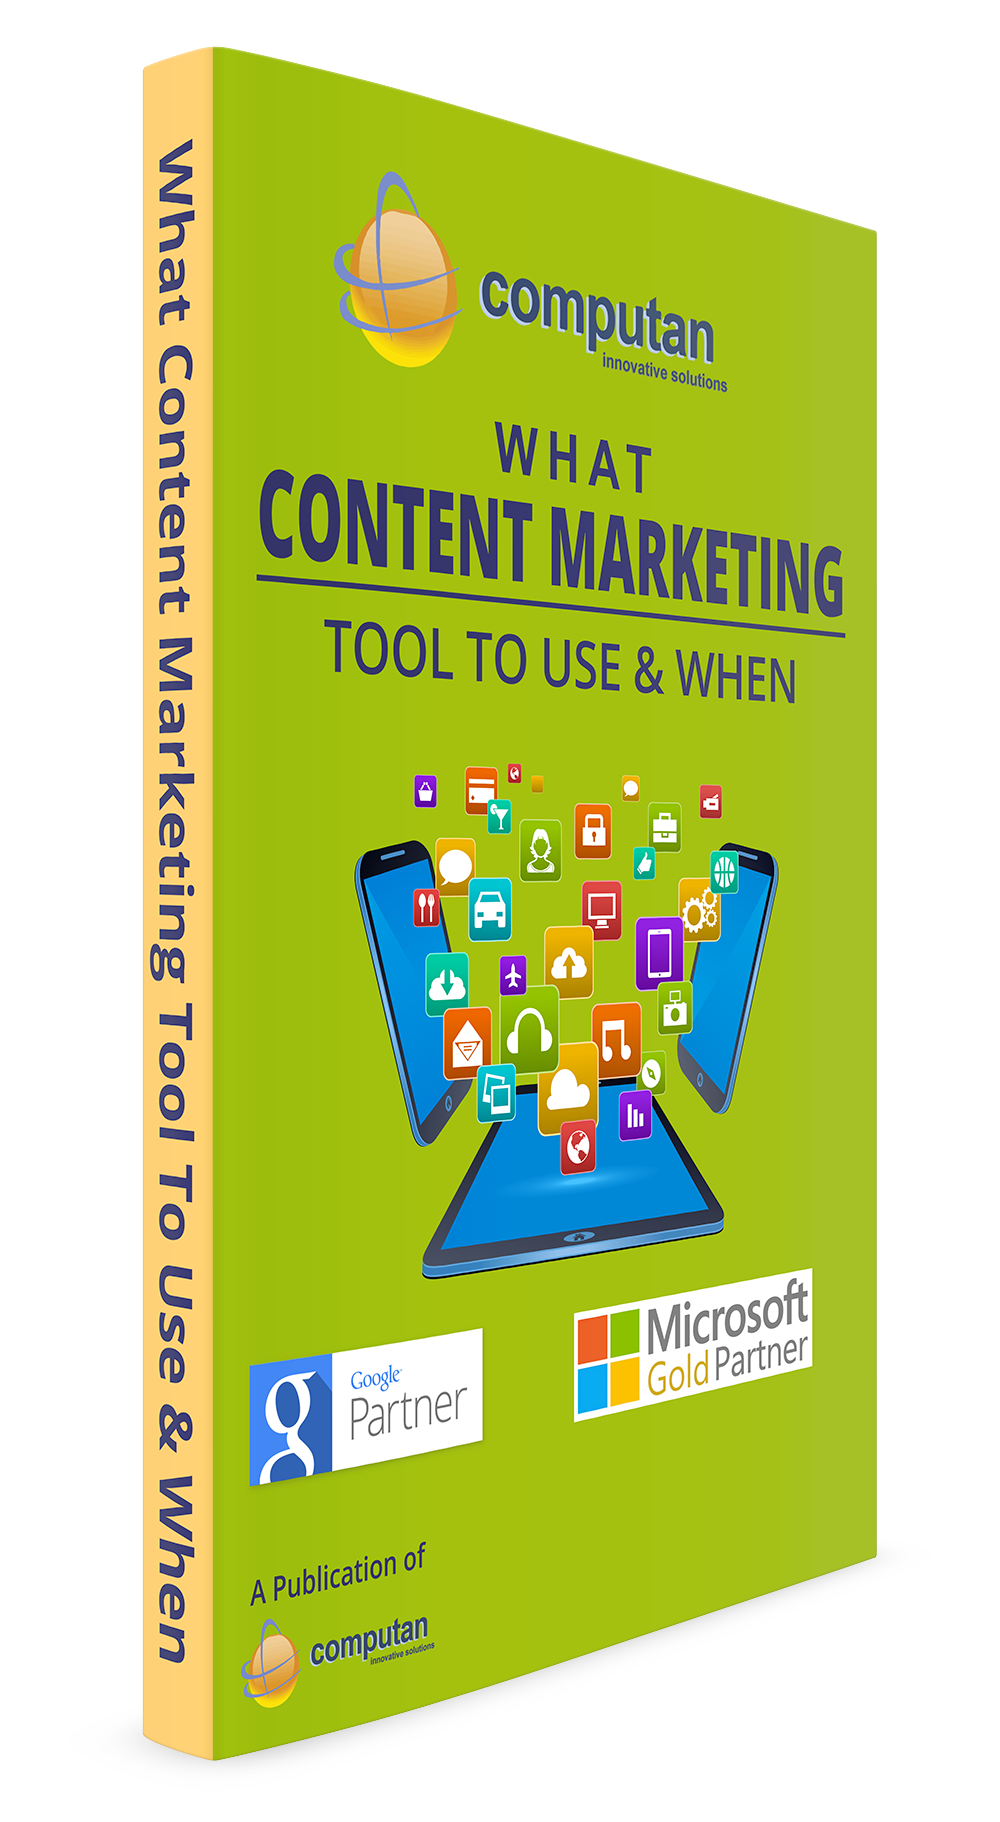 what-content-marketing-tool-to-use-and-when.png